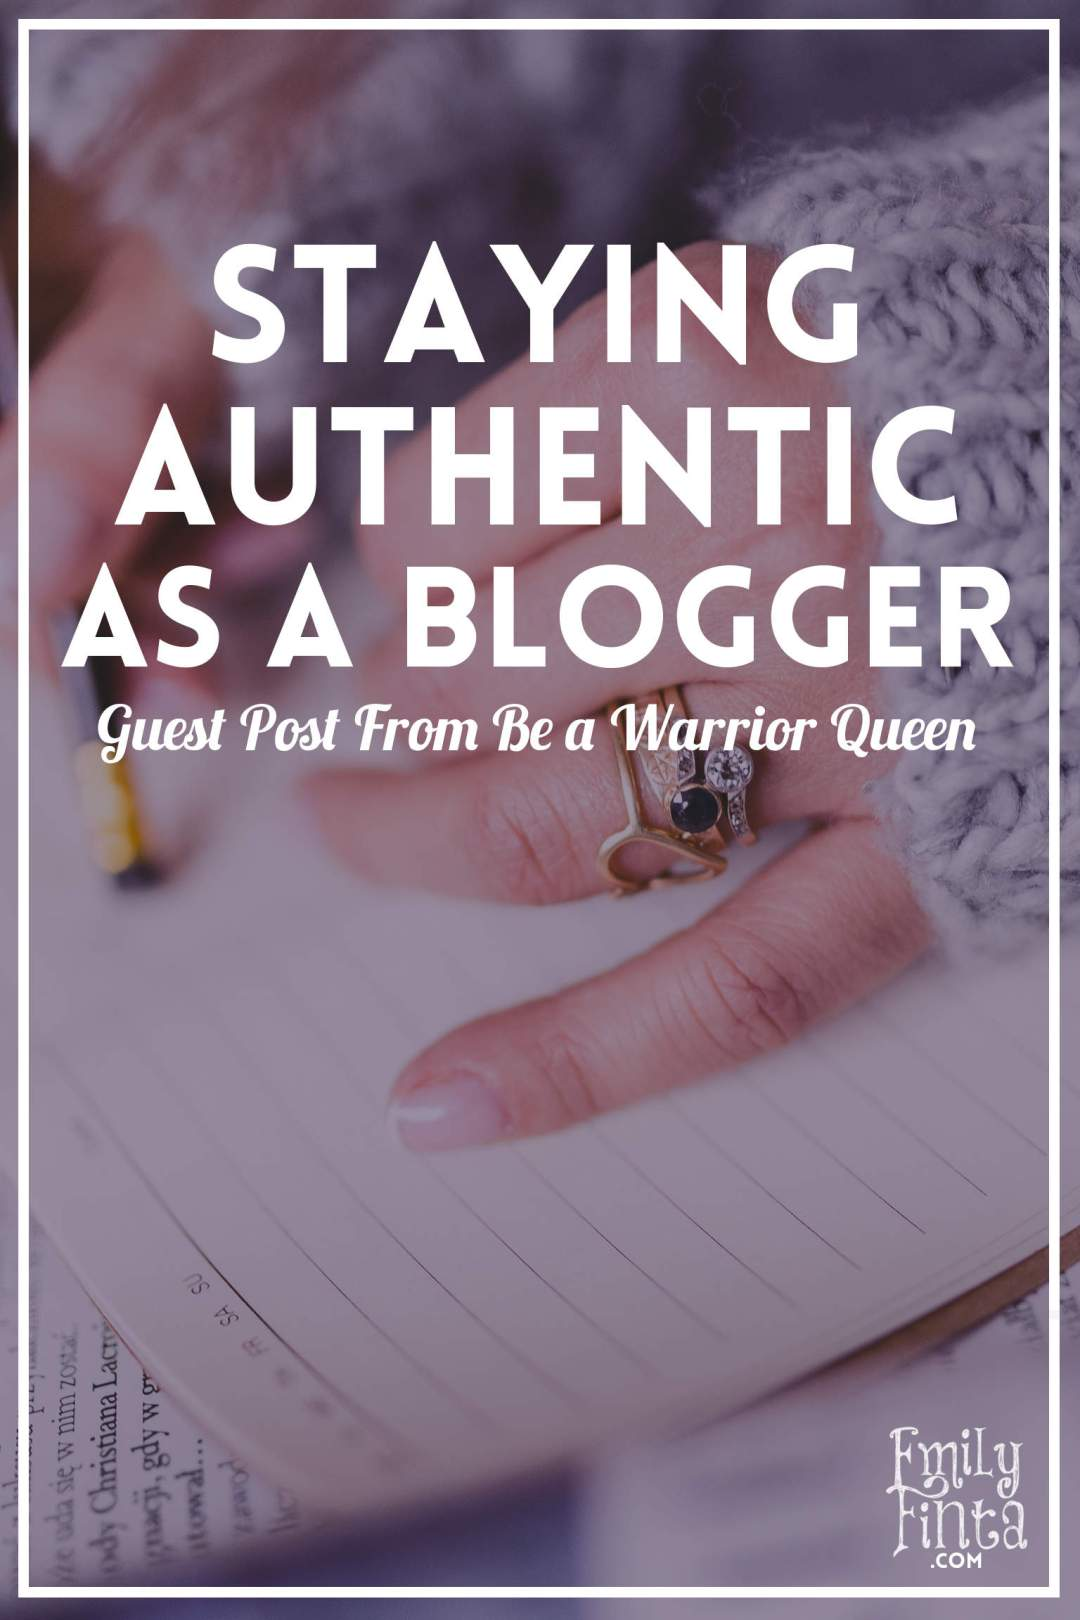 Emily Finta - Staying Authentic as a Blogger